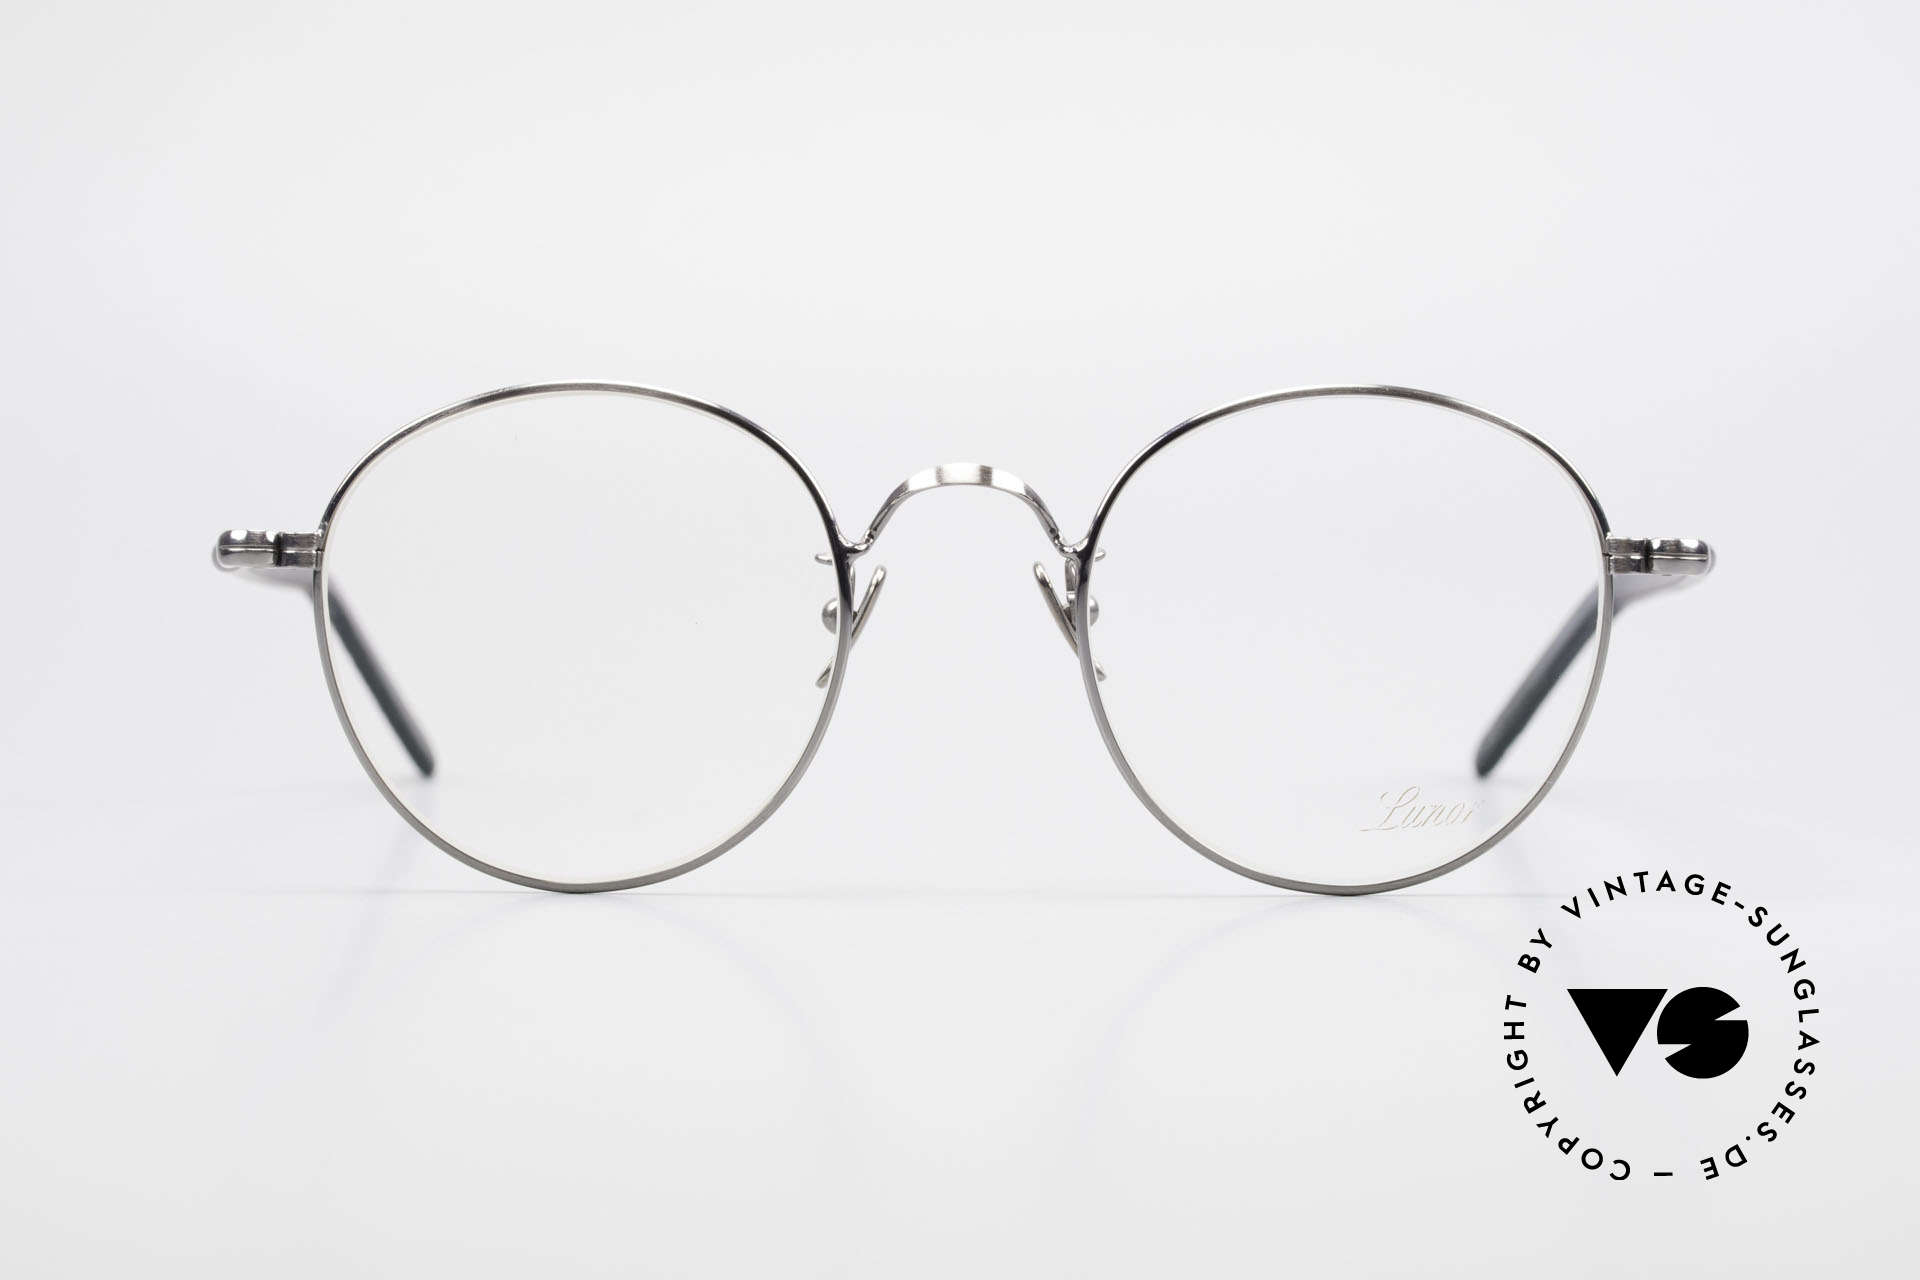 Lunor VA 111 Classy Panto Eyeglasses 2015, without ostentatious logos (but in a timeless elegance), Made for Men